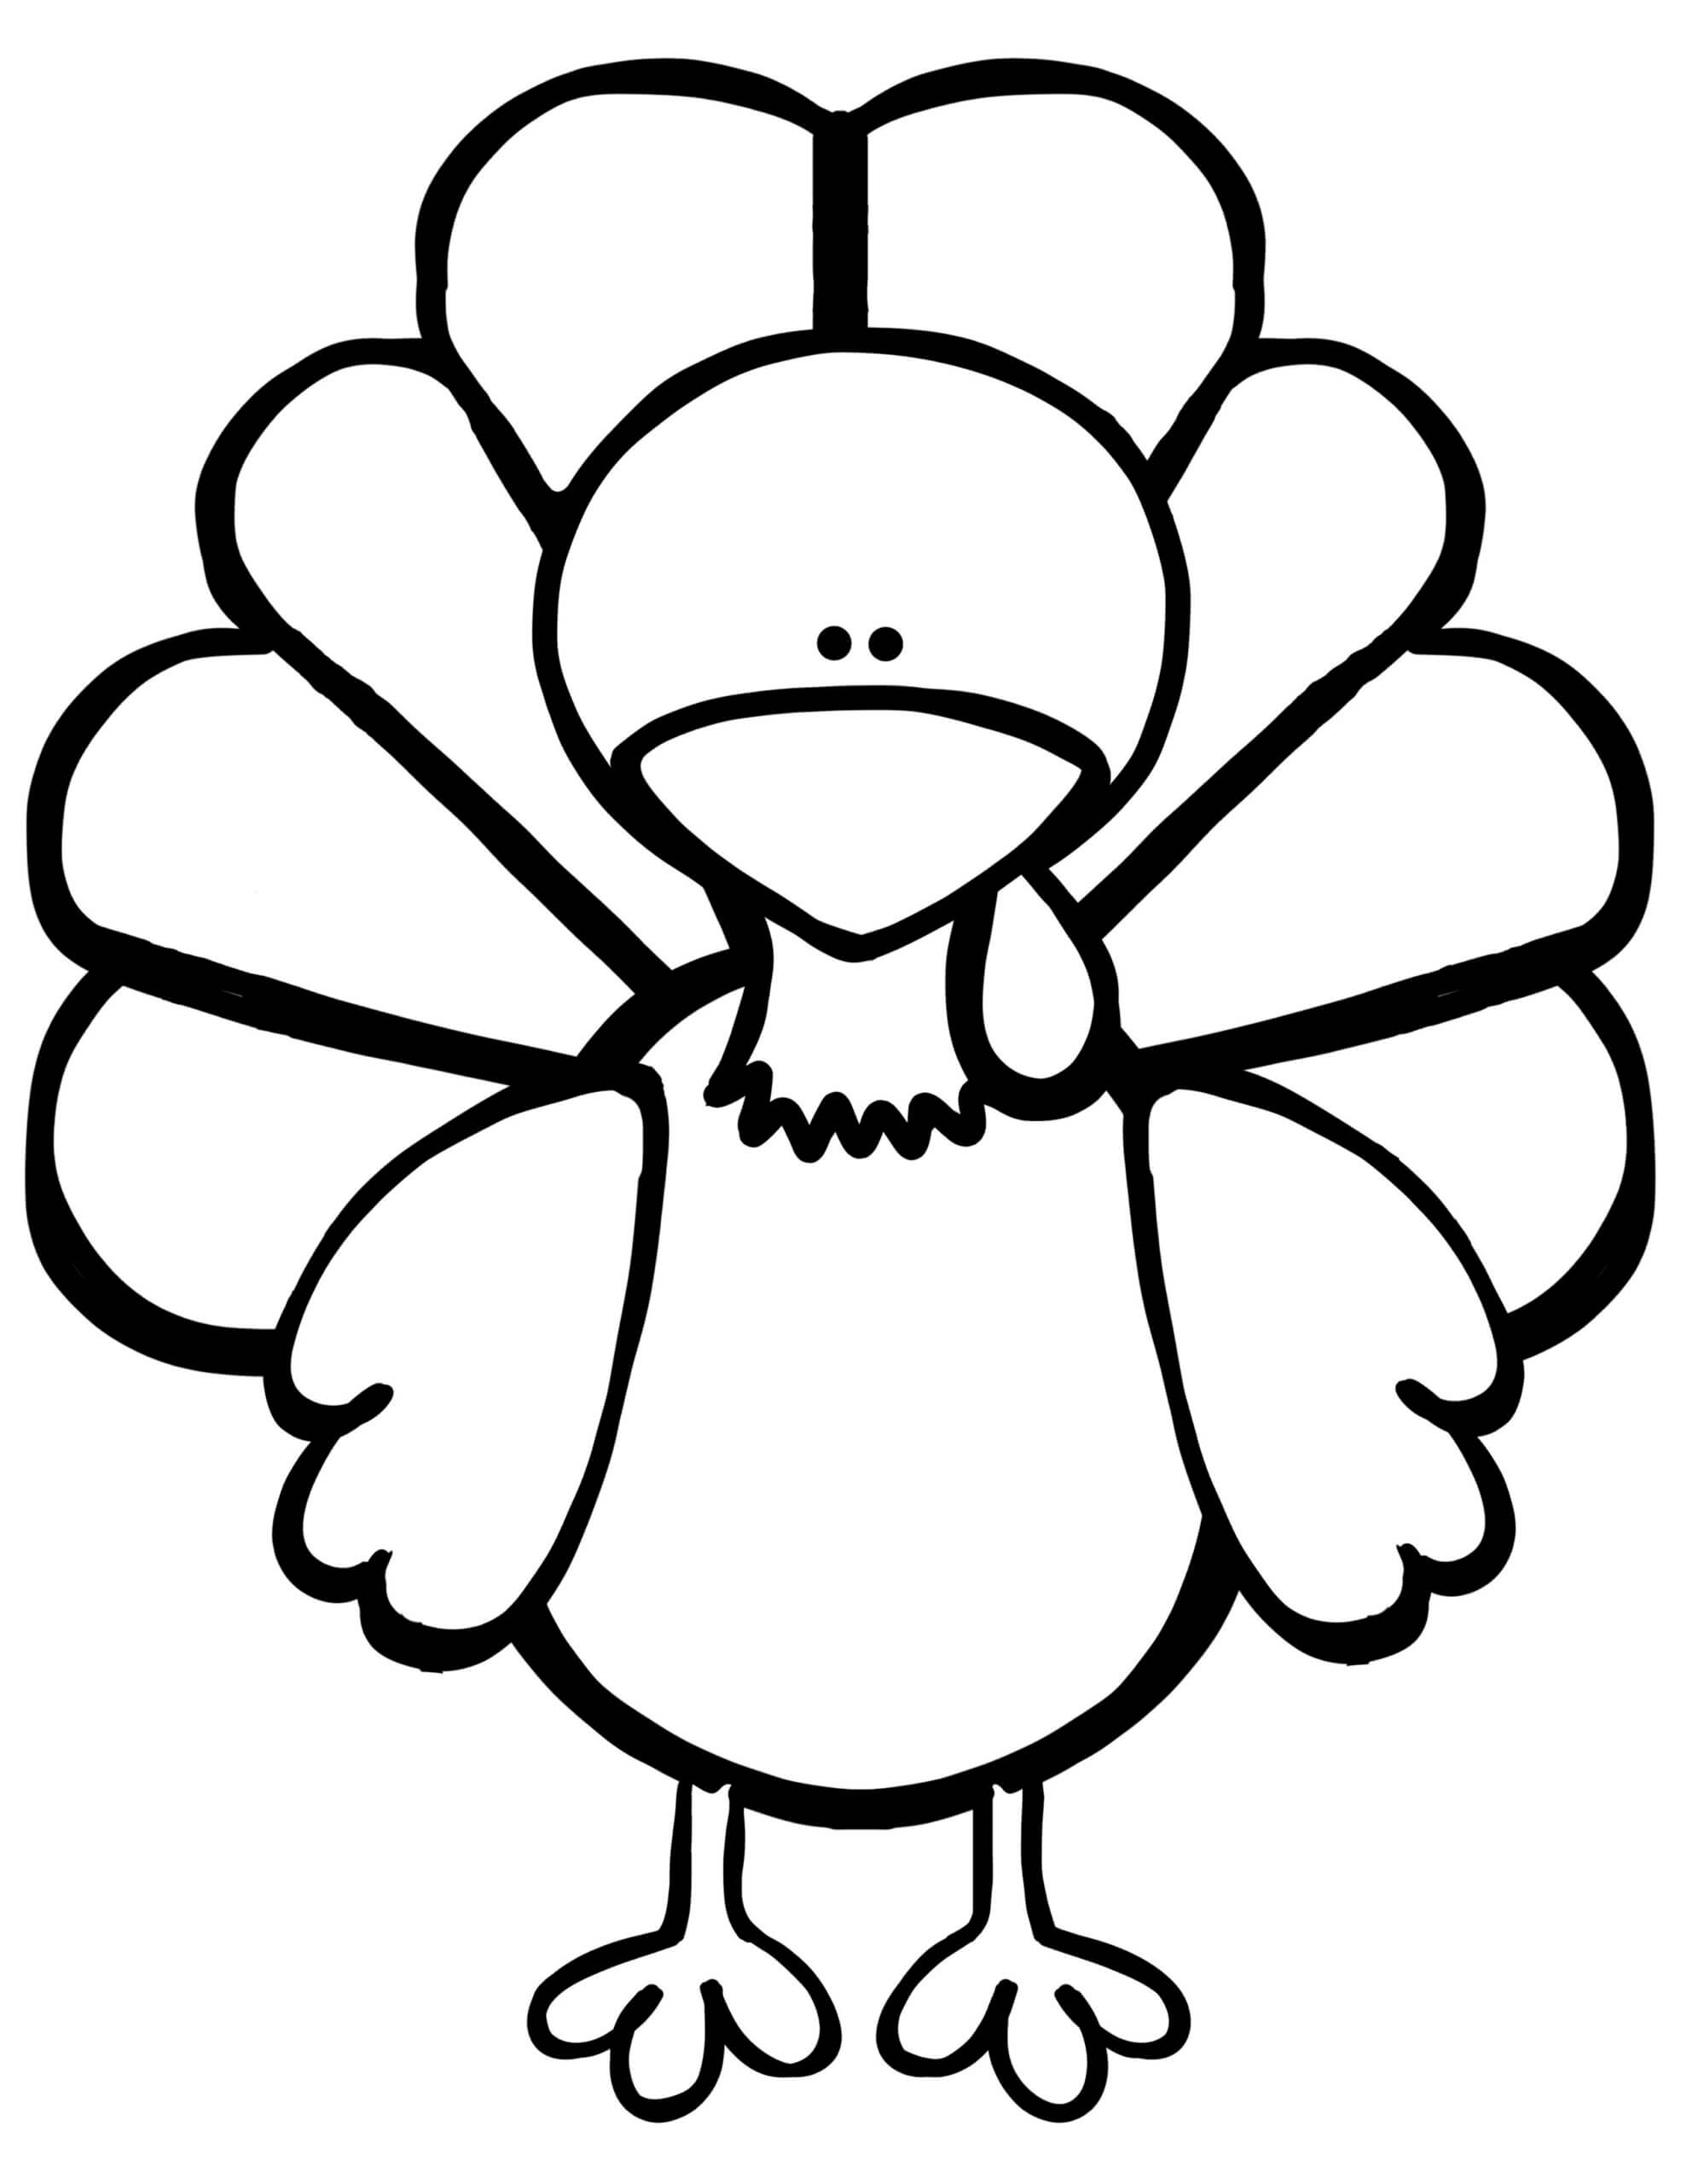 Everything You Need For The Turkey Disguise Project - Kids Pertaining To Blank Turkey Template